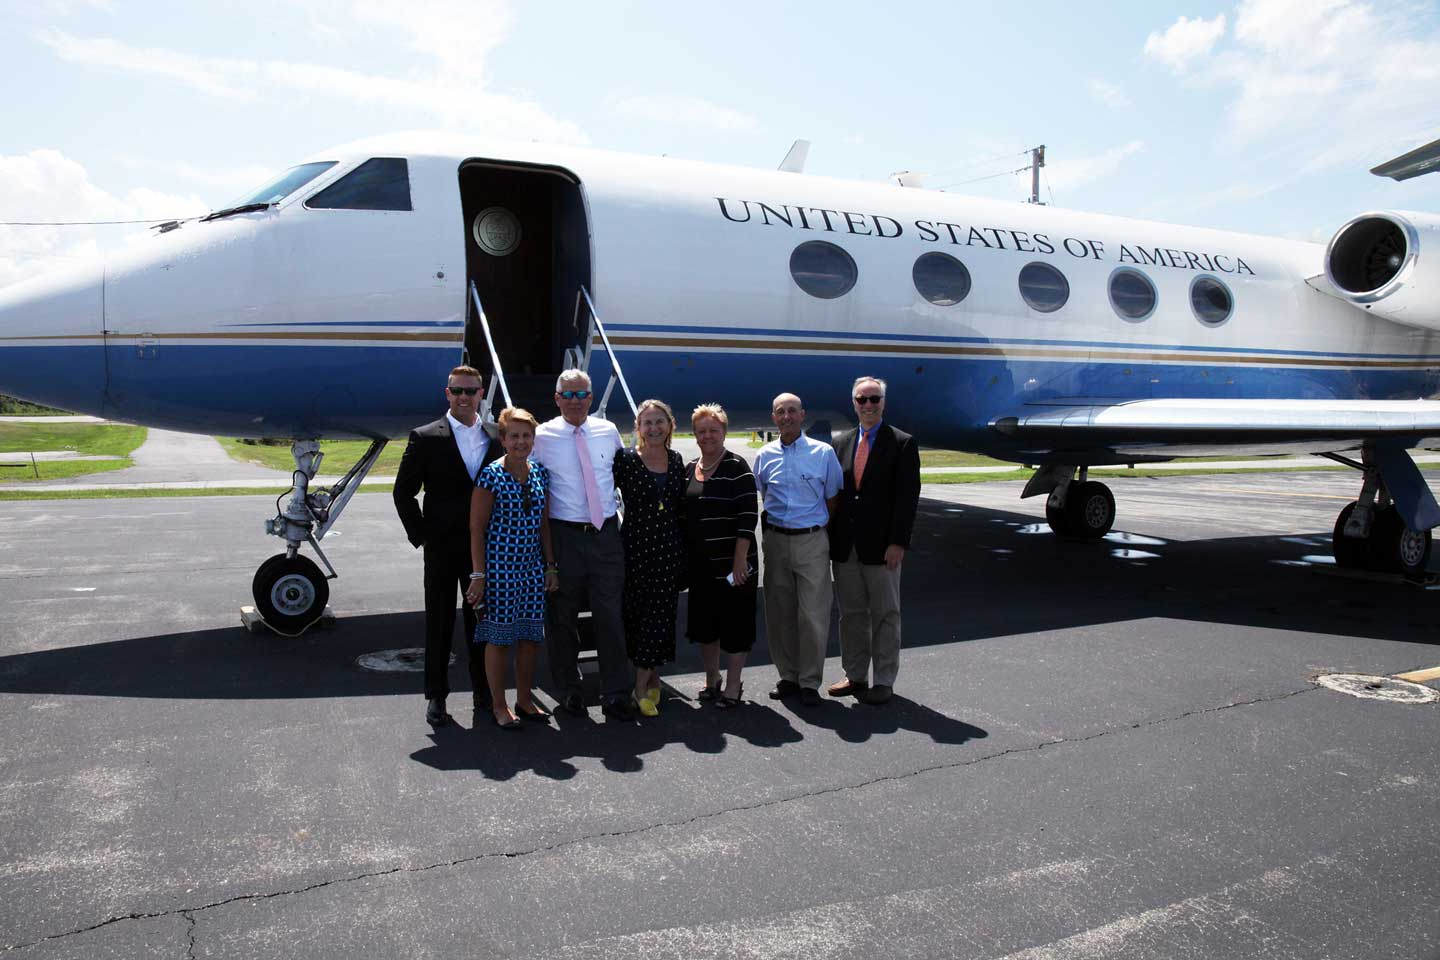 Dutchess Community College and Dutchess County officials welcomed a Gulfstream G3 to Hudson Valley Regional Airport that previously served in the presidential fleet. The plane, acquired through government surplus, will support the Airframe and Powerplant Maintenance Program the college will introduce in 2020. From left to right: Ron Hicks (Dutchess County government), Bridgette Anderson (DCC), William O'Neil (Dutchess County government), Dr. Pamela Edington (DCC president), Dr. Ellen Gambino (DCC), John Trosie (DCC) and Tim Massie (DCC trustee).